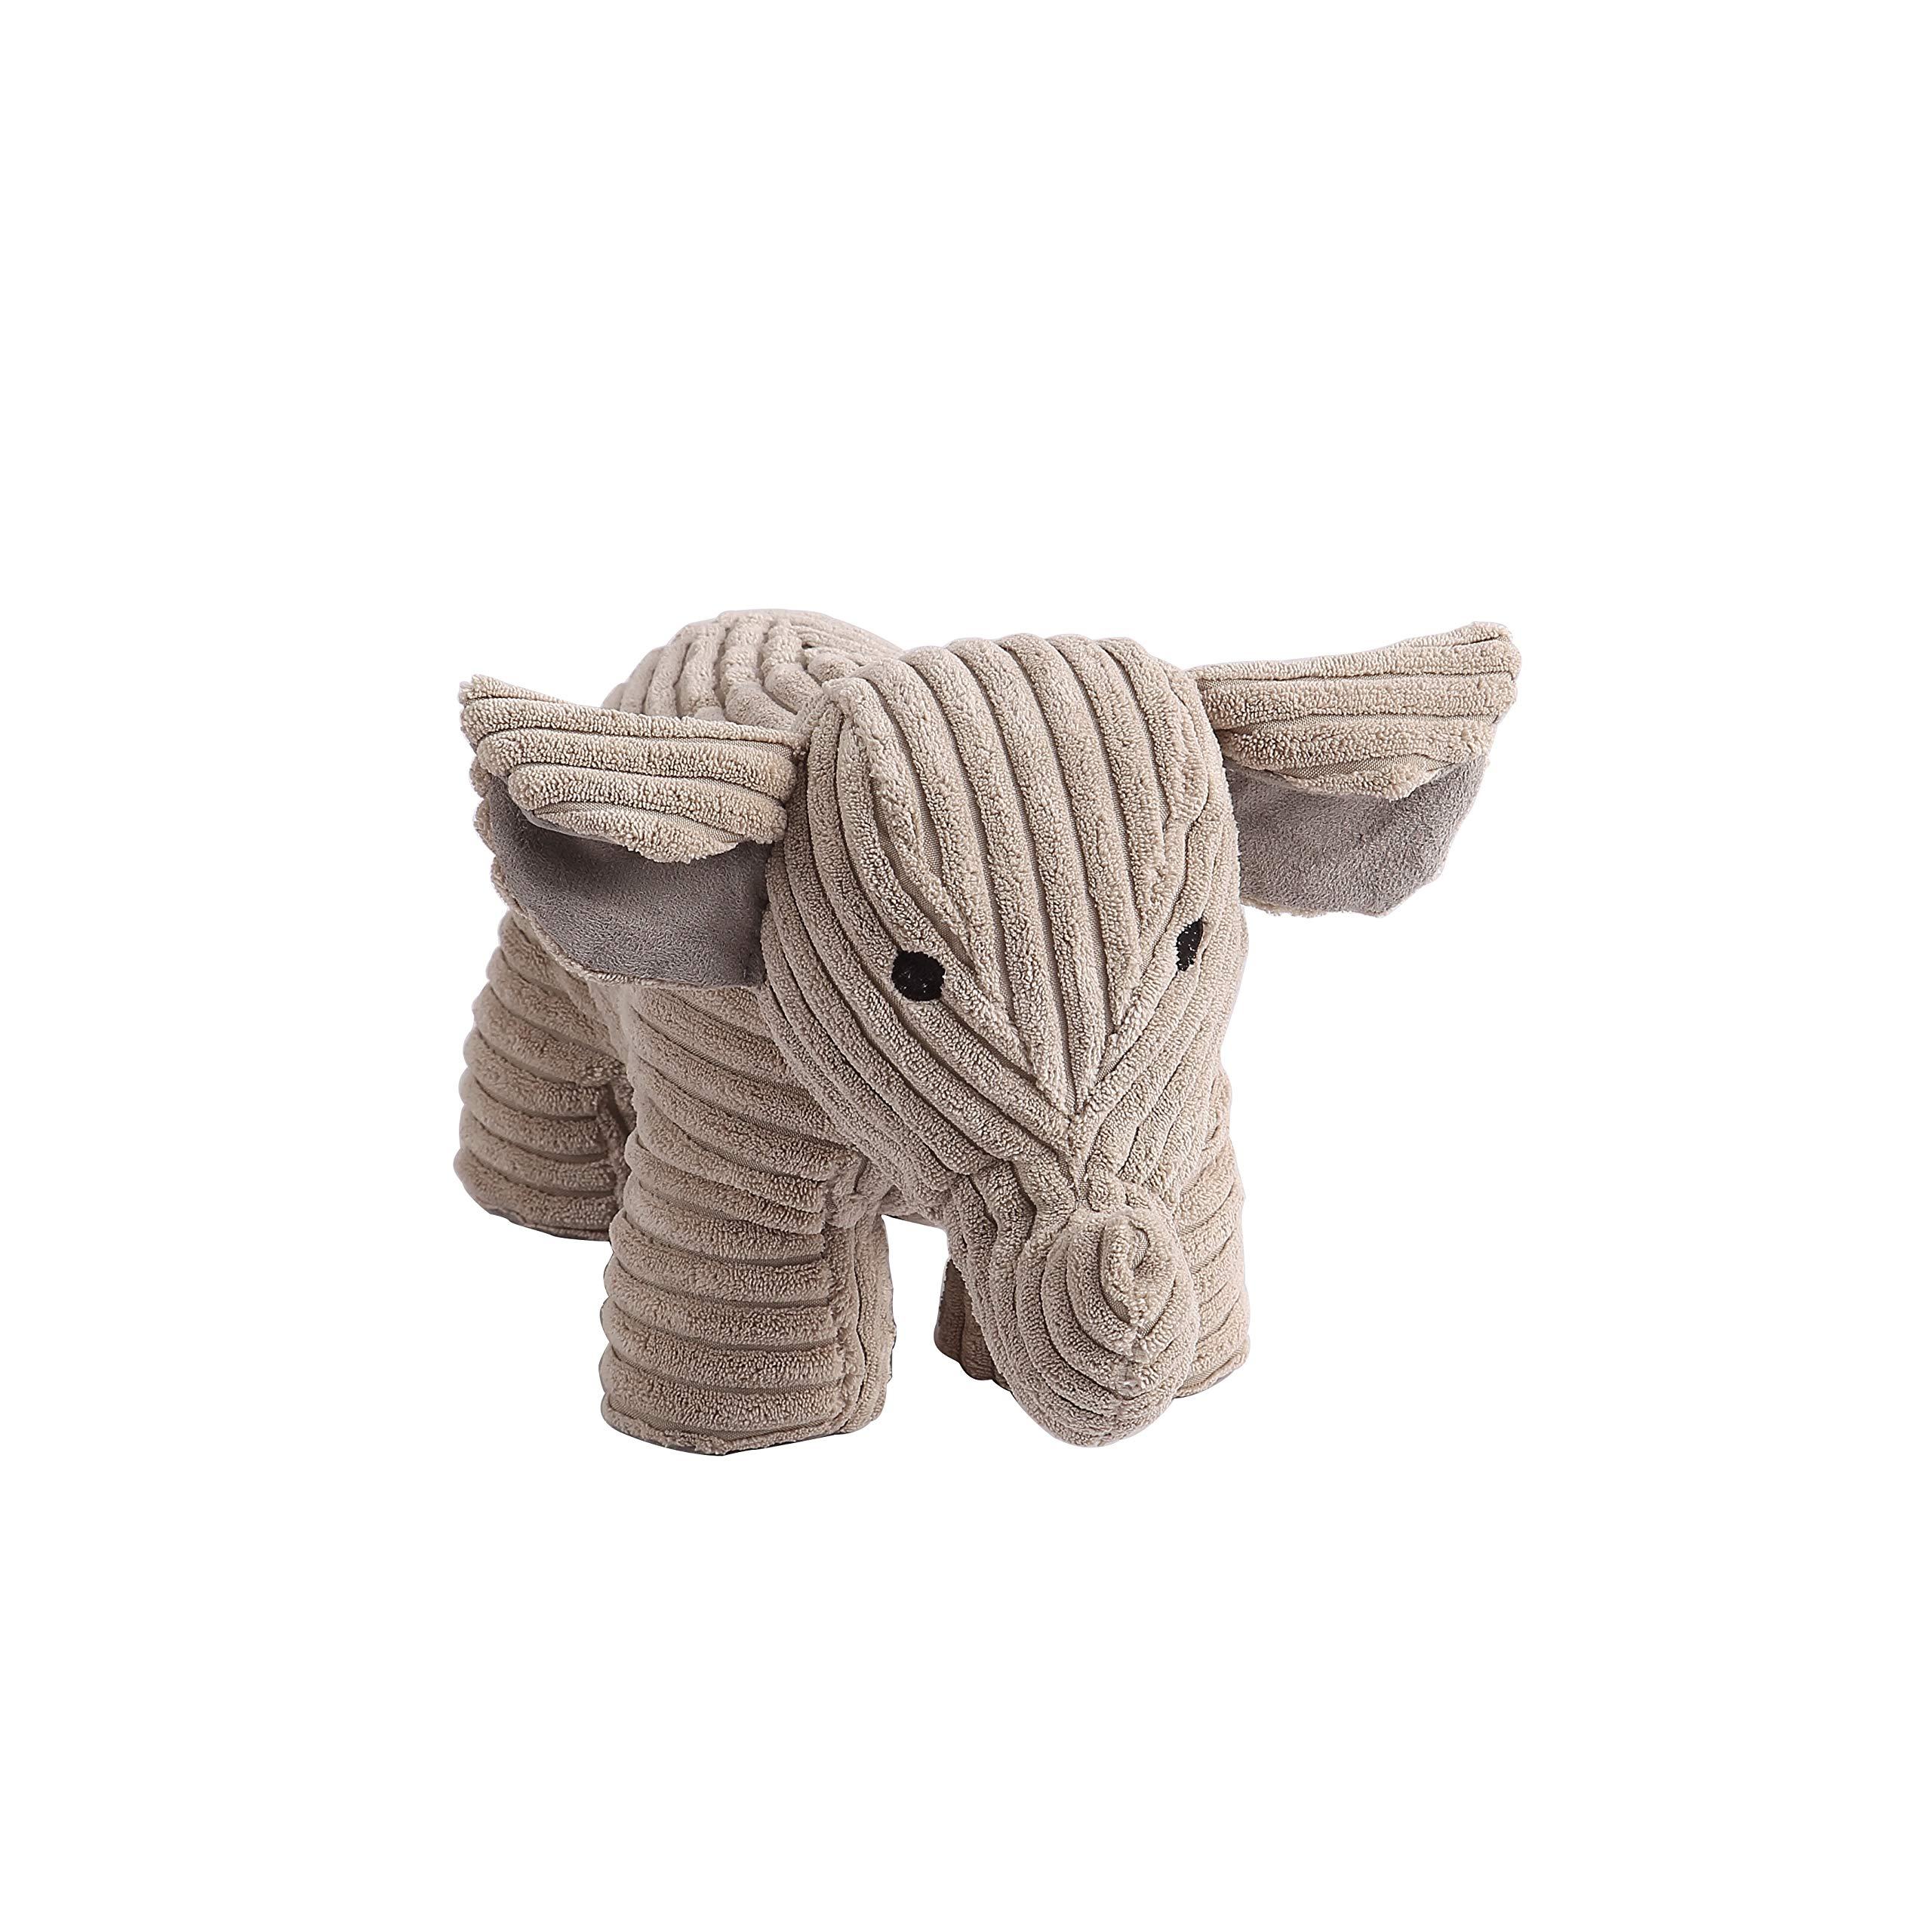 Decorative Door Stopper by Morgan Home – Available in Many Adorable Animals and Styles – Durable, Subtle Home Decor Easily Matches Measures Approx. 11 x 5.5 x 5.5 Inches (Grey Elephant)